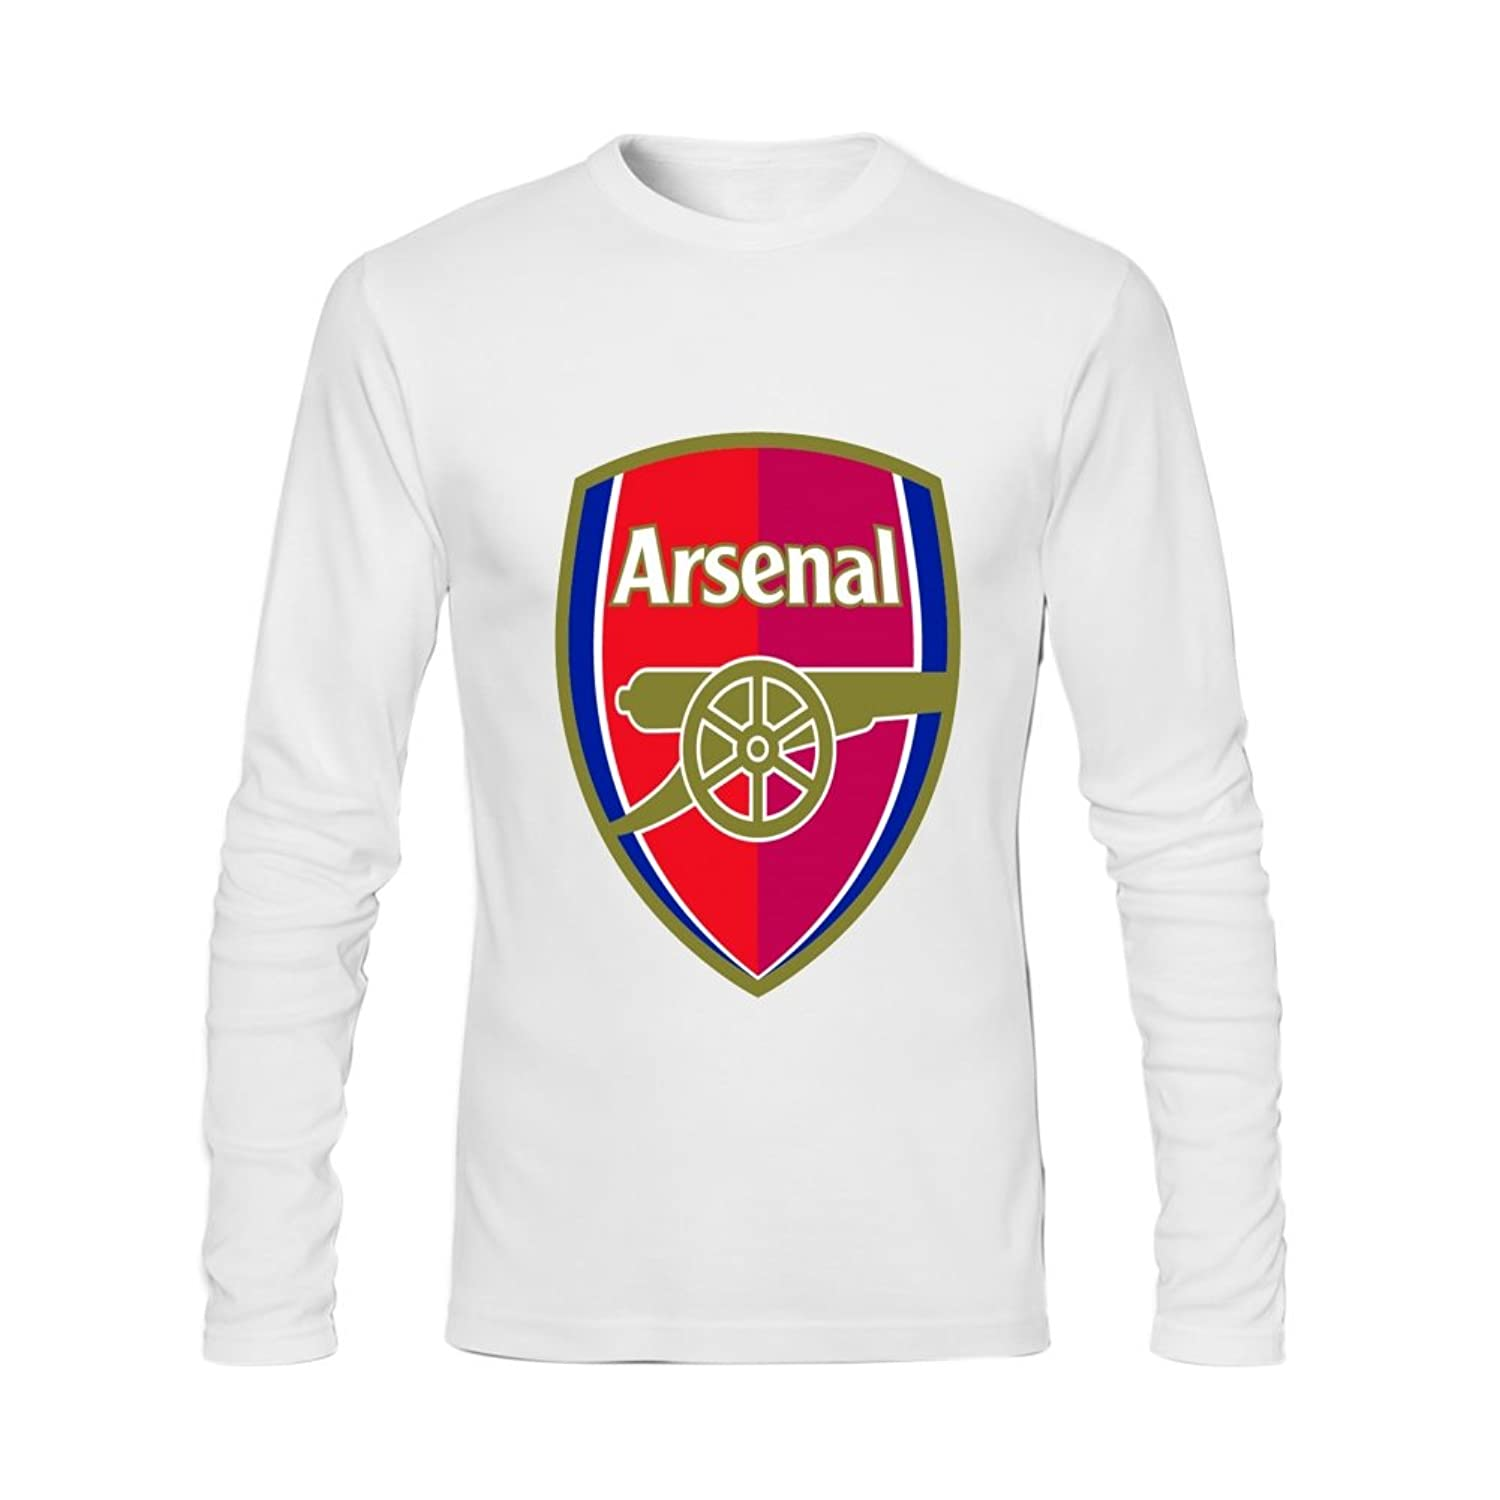 Anydover Arsenal FC Team Mens 100% Cotton Crew Neck Long Sleeve T-Shirt S White